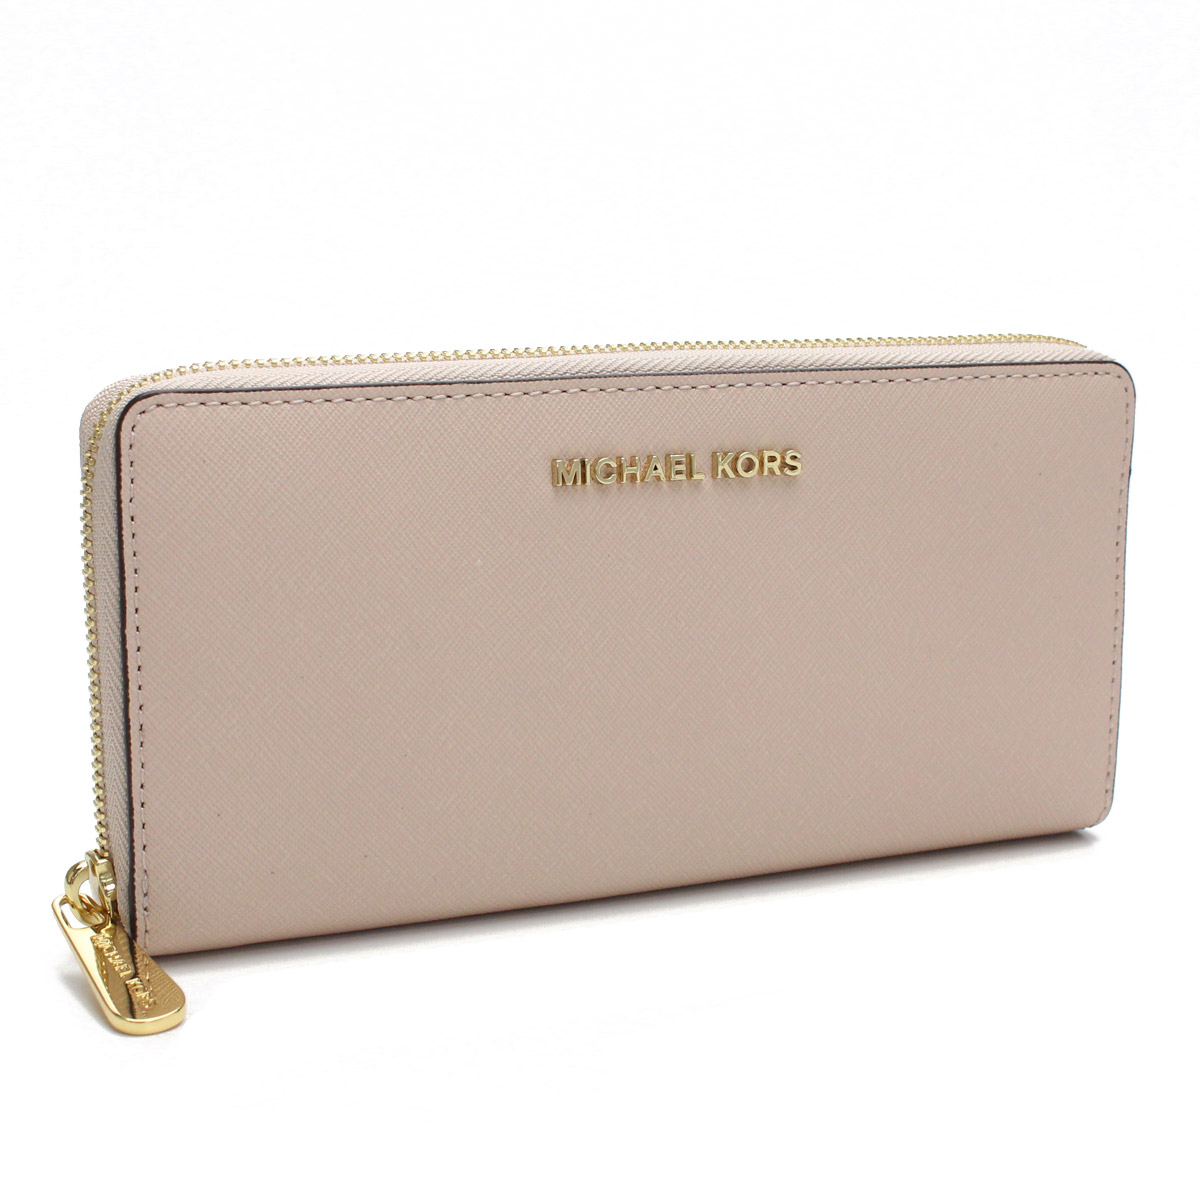 fd93f5f83ccc Bighit The total brand wholesale  Michael Kors (MICHAEL KORS) JET SET TRAVEL  round fastener long wallet 32S3GTVE3L SOFT PINK pink system